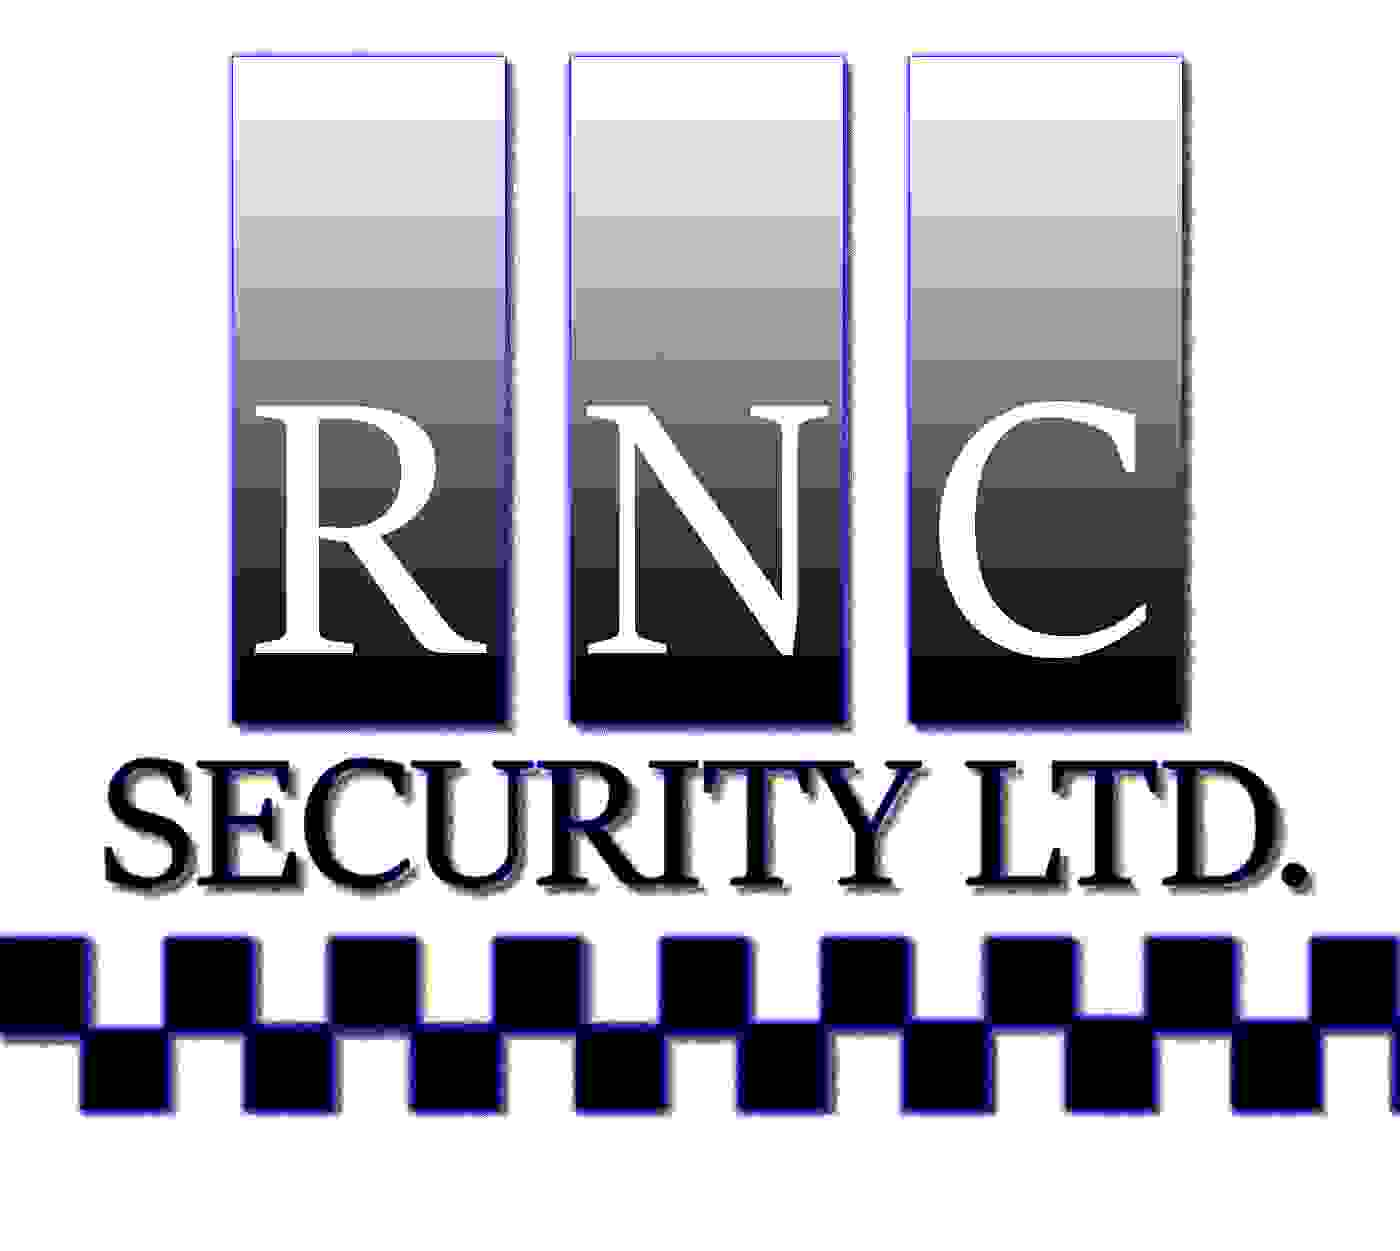 security guard company in Bolton, Bury, Manchester, Salford, Stockport, Wigan, Rochdale, Oldham